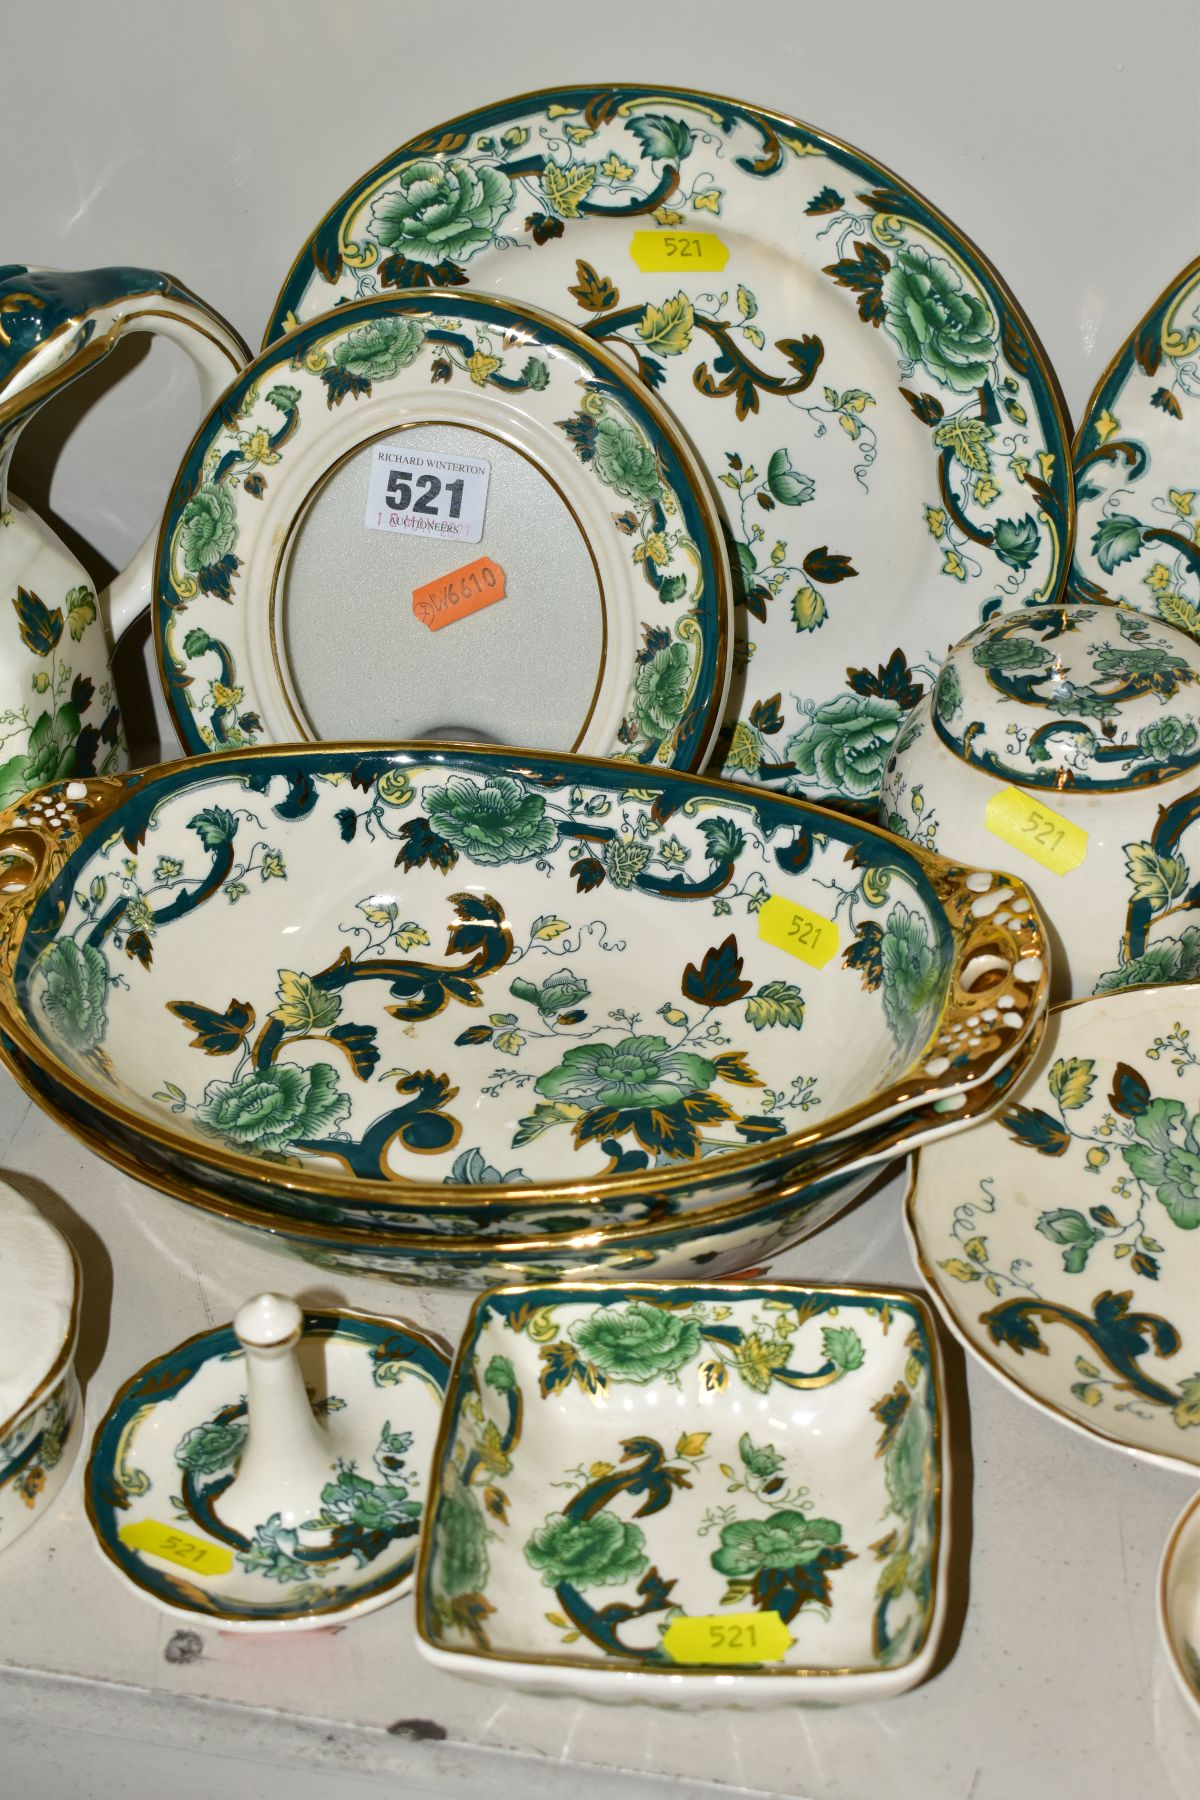 A COLLECTION OF MASONS IRONSTONE 'CHARTREUSE' PATTERN PLATES, JUGS, BOWLS, GINGER JARS, etc, - Image 4 of 7